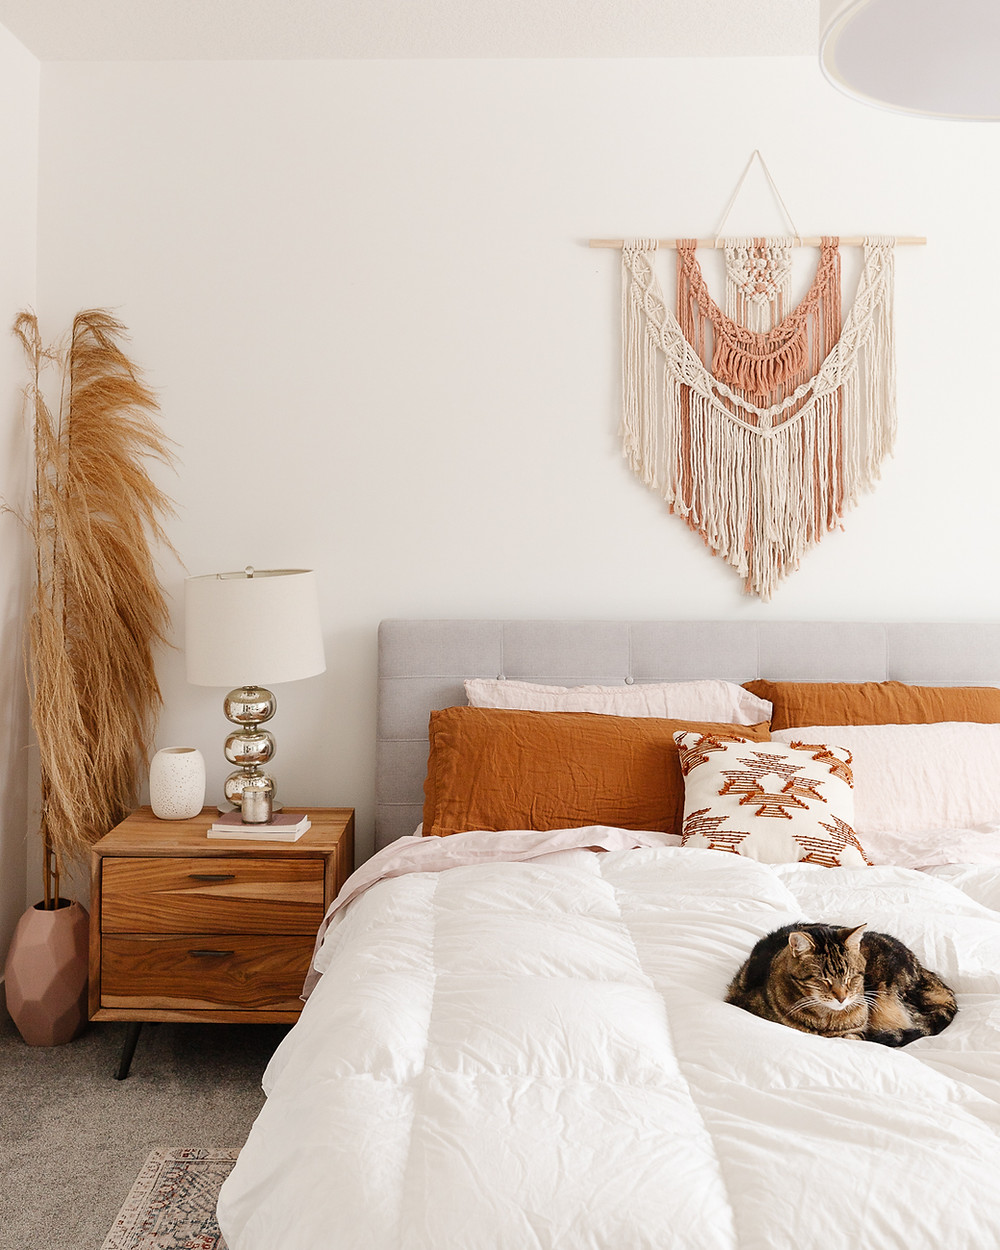 Cream and blush macrame wall hanging over bed with grey fabric headboard wood side table with silver lamp cat sleeping on white duvet pampas grass in pink vase on floor